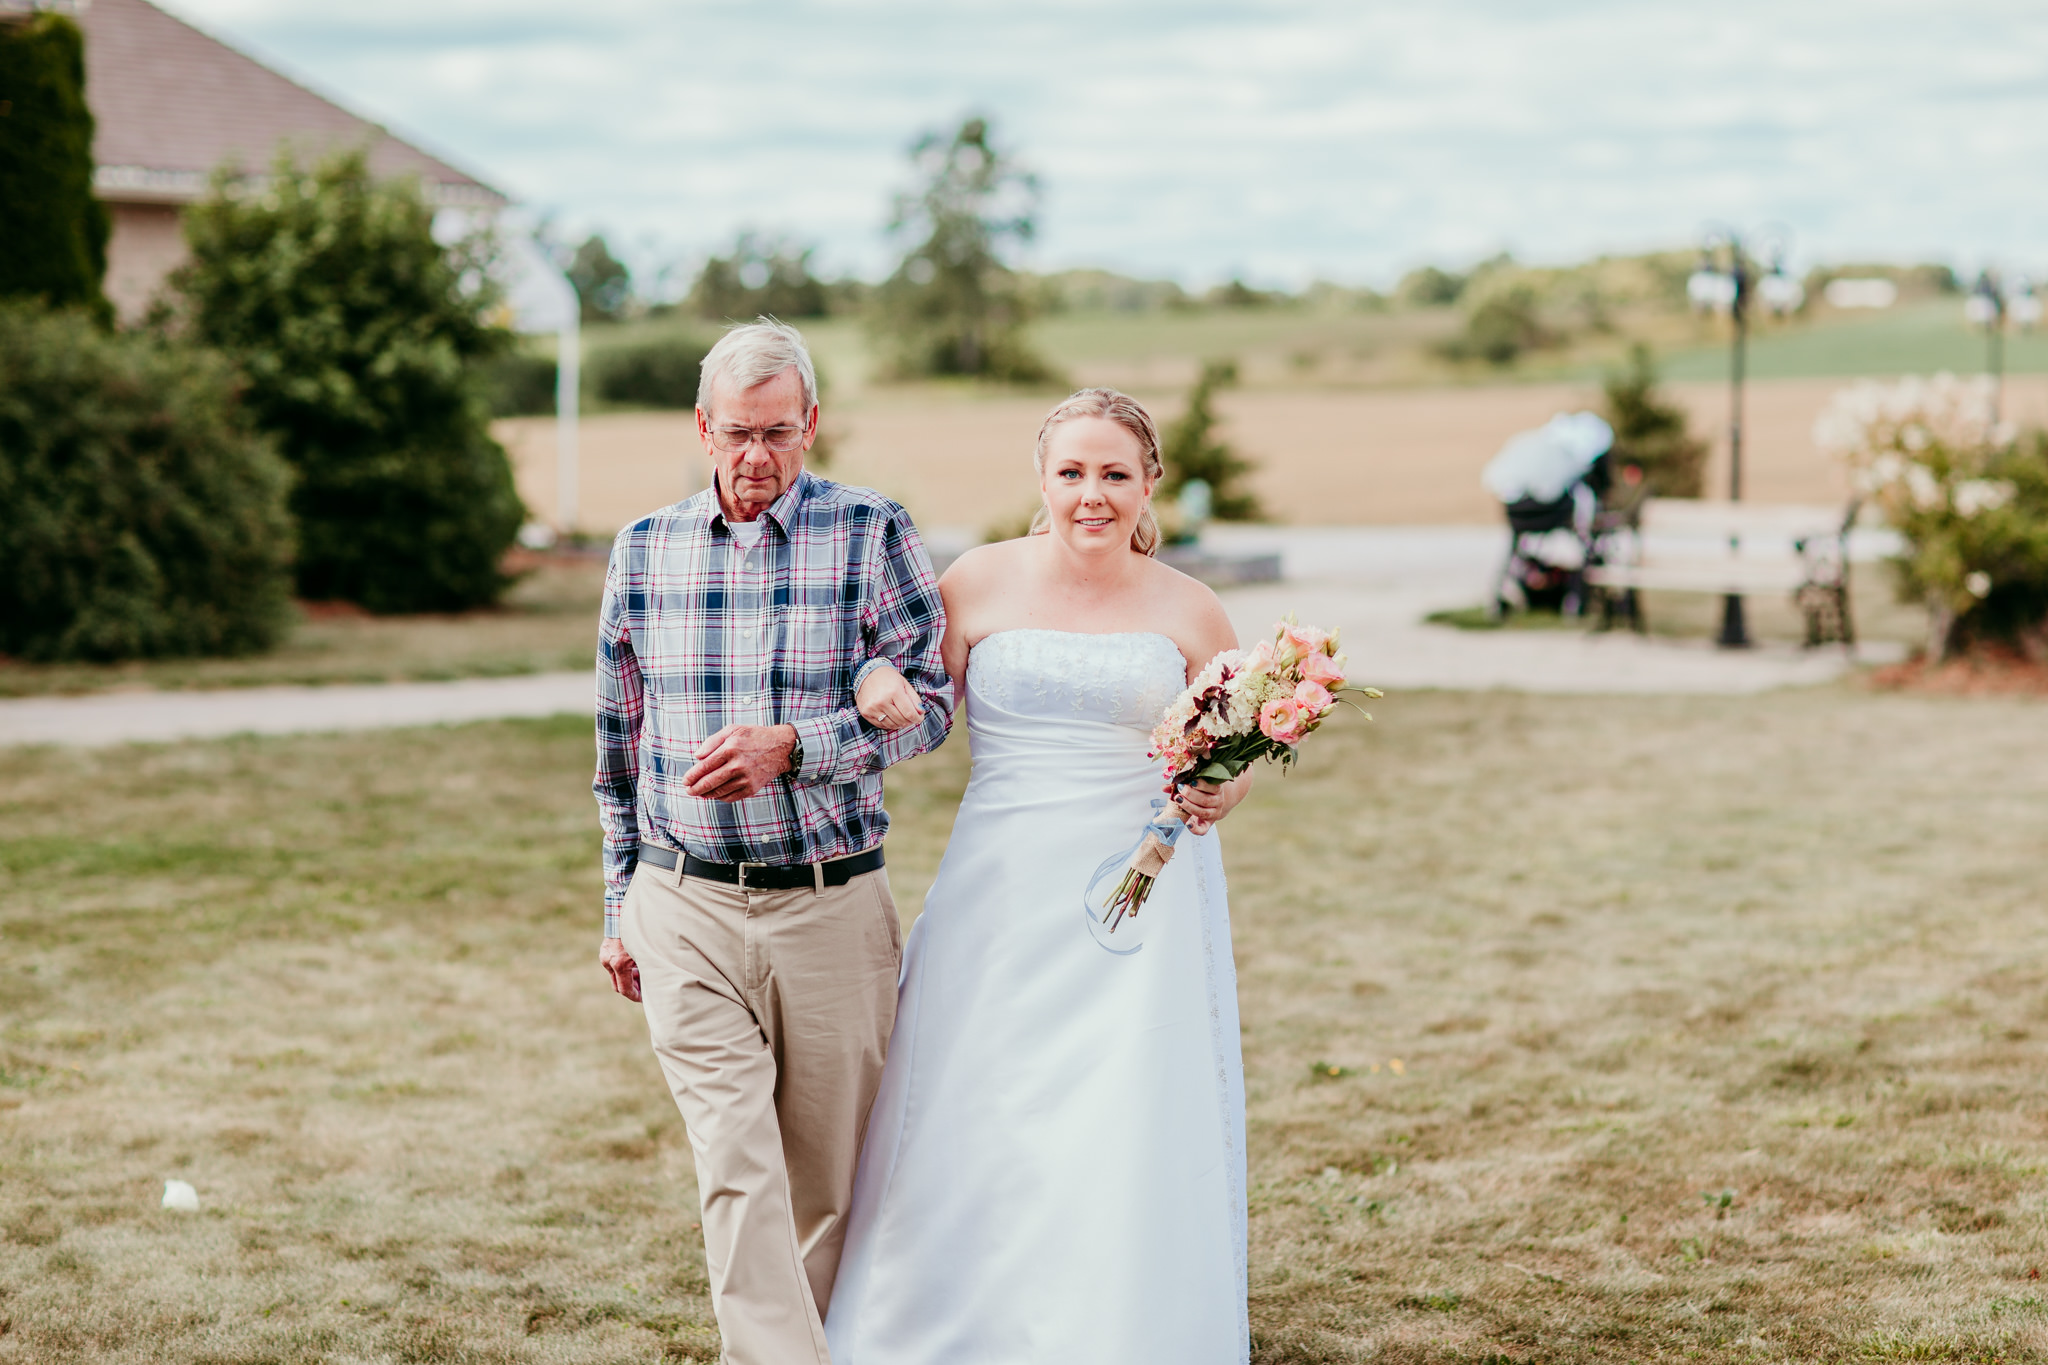 bride walking down aisle with her father smiling